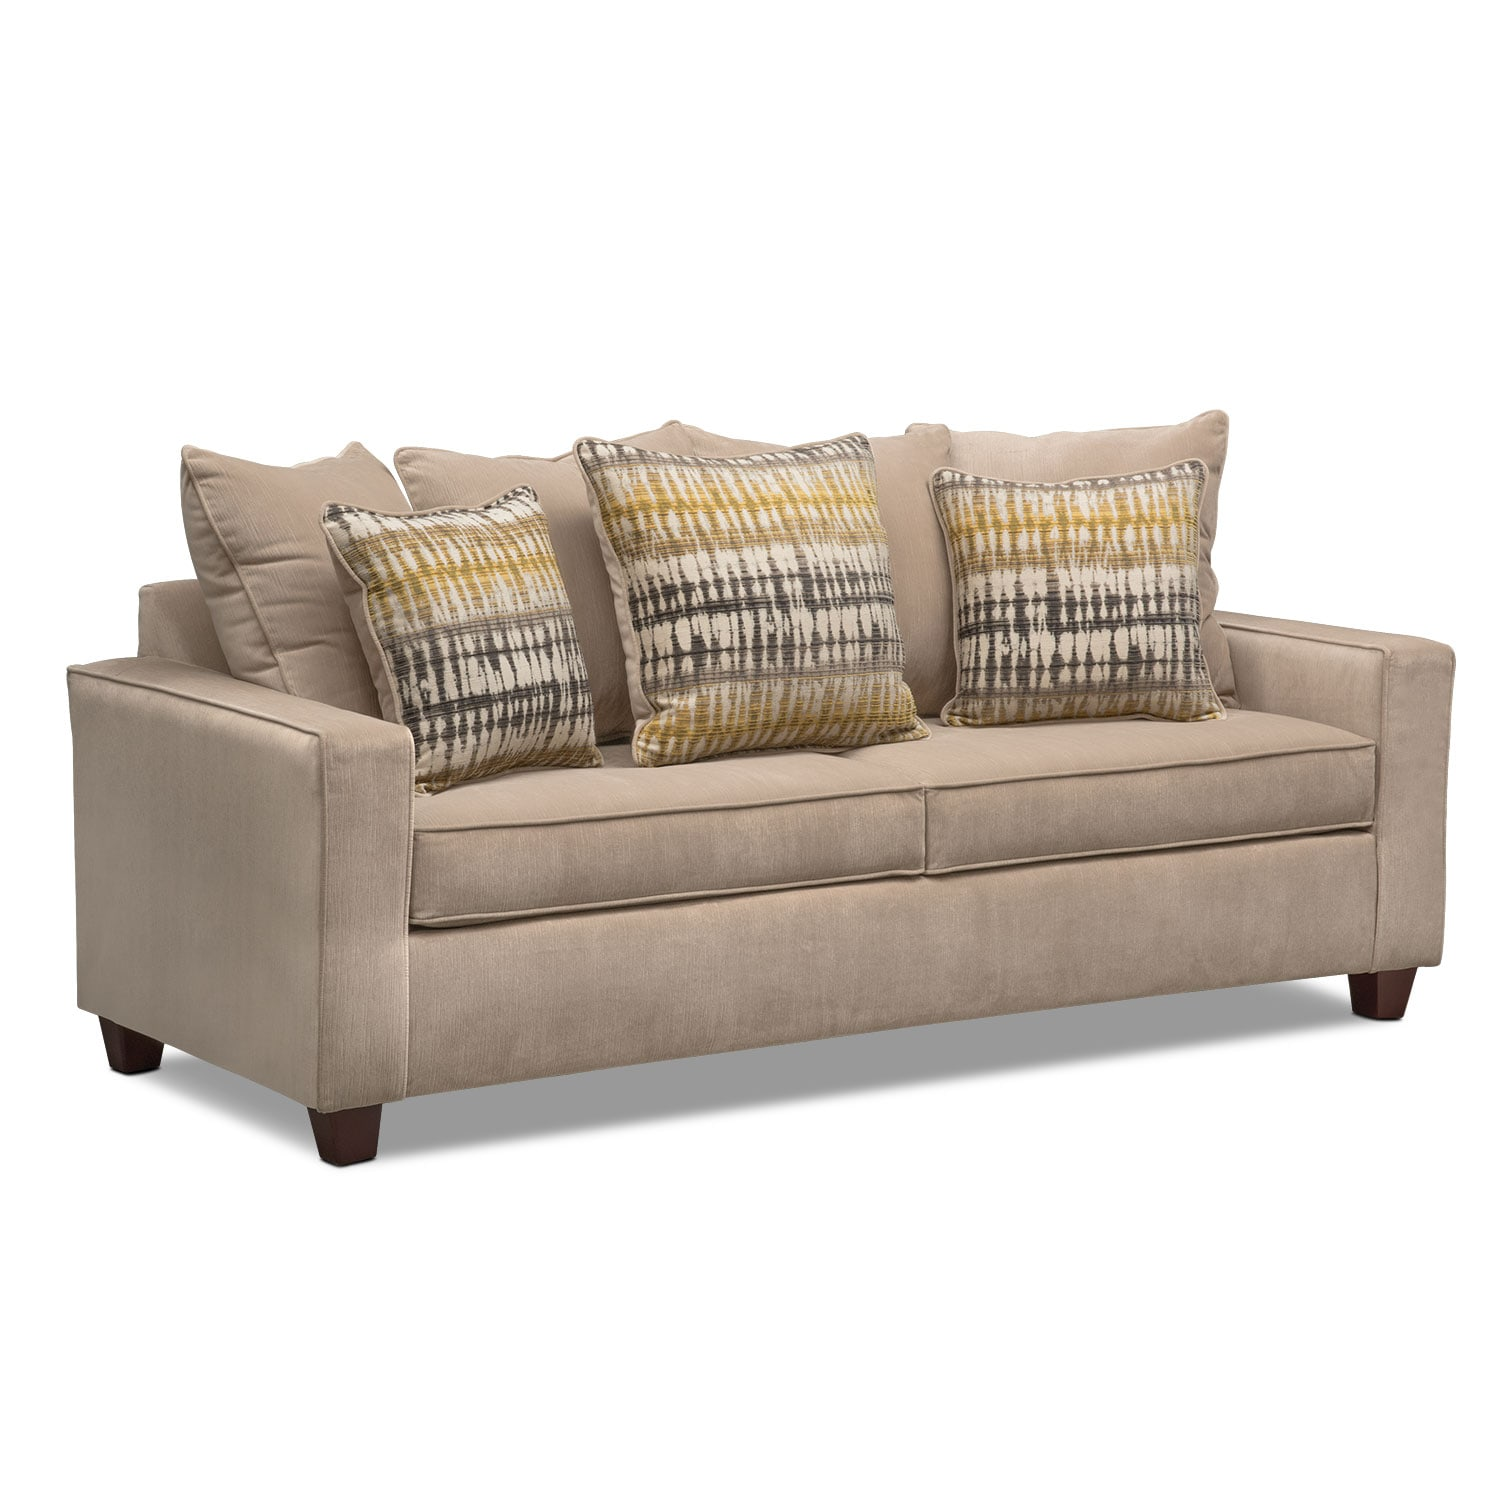 Bryden Queen Memory Foam Sleeper Sofa Beige American Signature Furniture